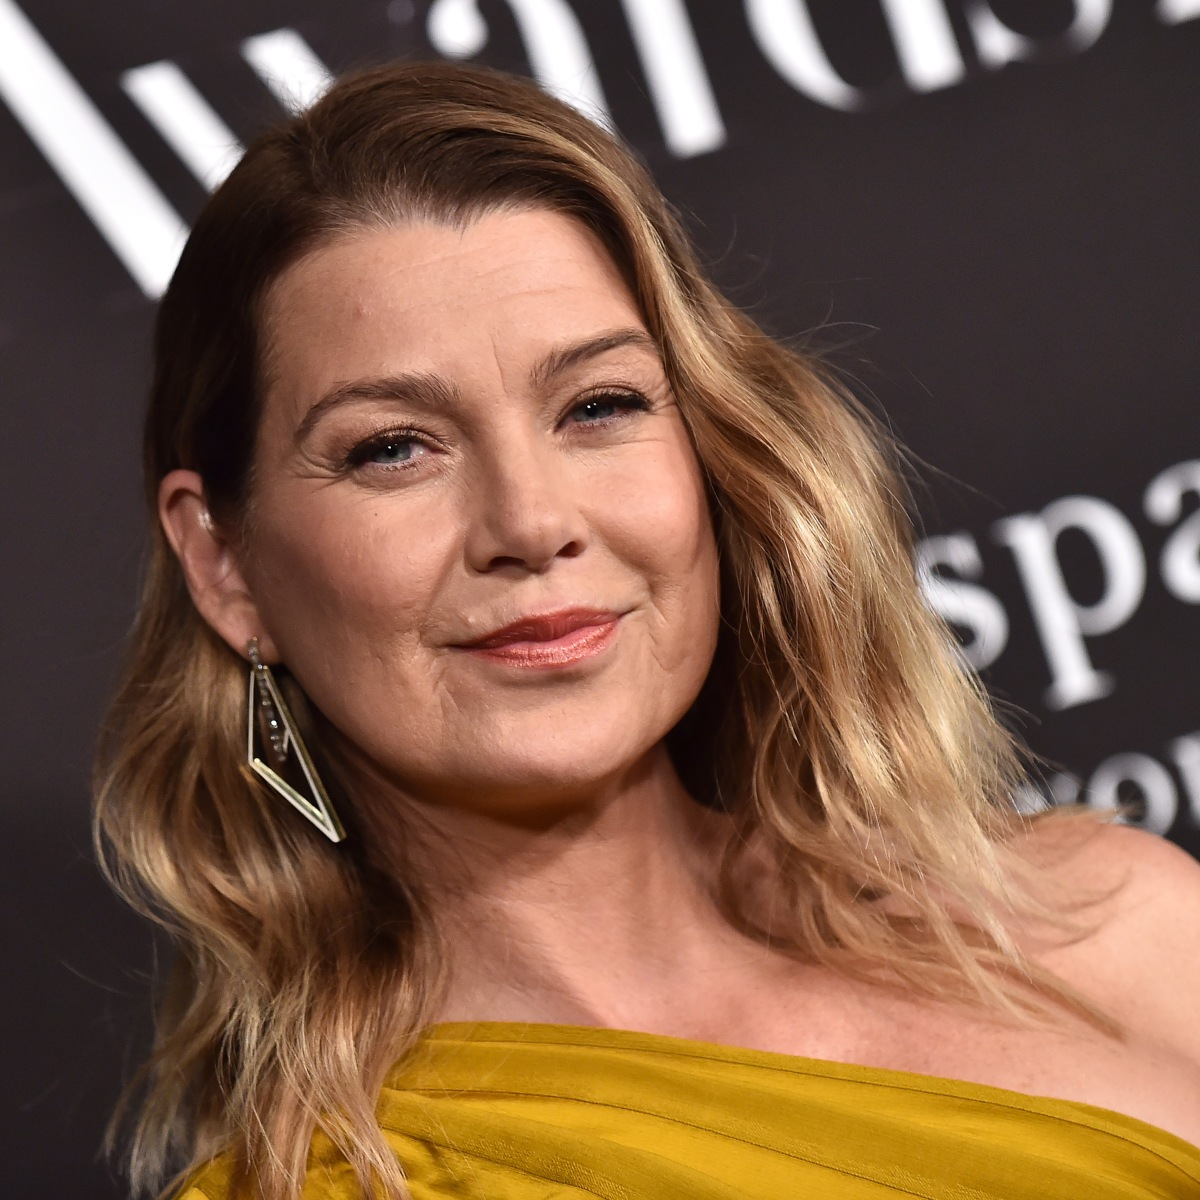 Grey S Anatomy Stars Net Worths Find Out How Much Ellen Pompeo Makes If you have a new more reliable information about net worth, earnings, please, fill out the form below. https www closerweekly com posts greys anatomy stars net worths 142169